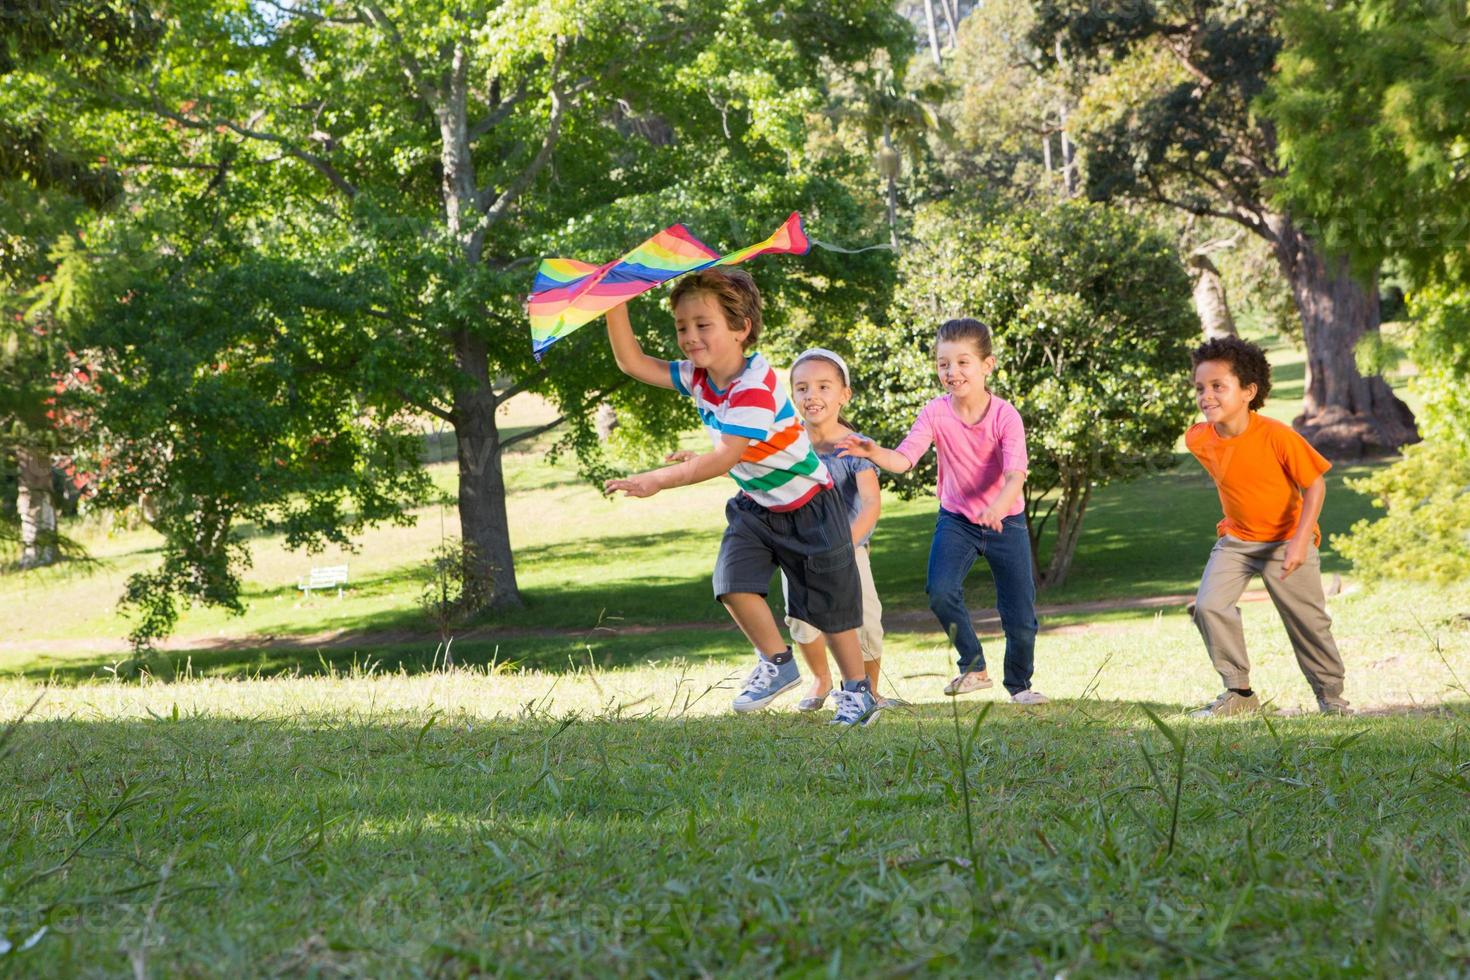 Children playing with kite in park photo